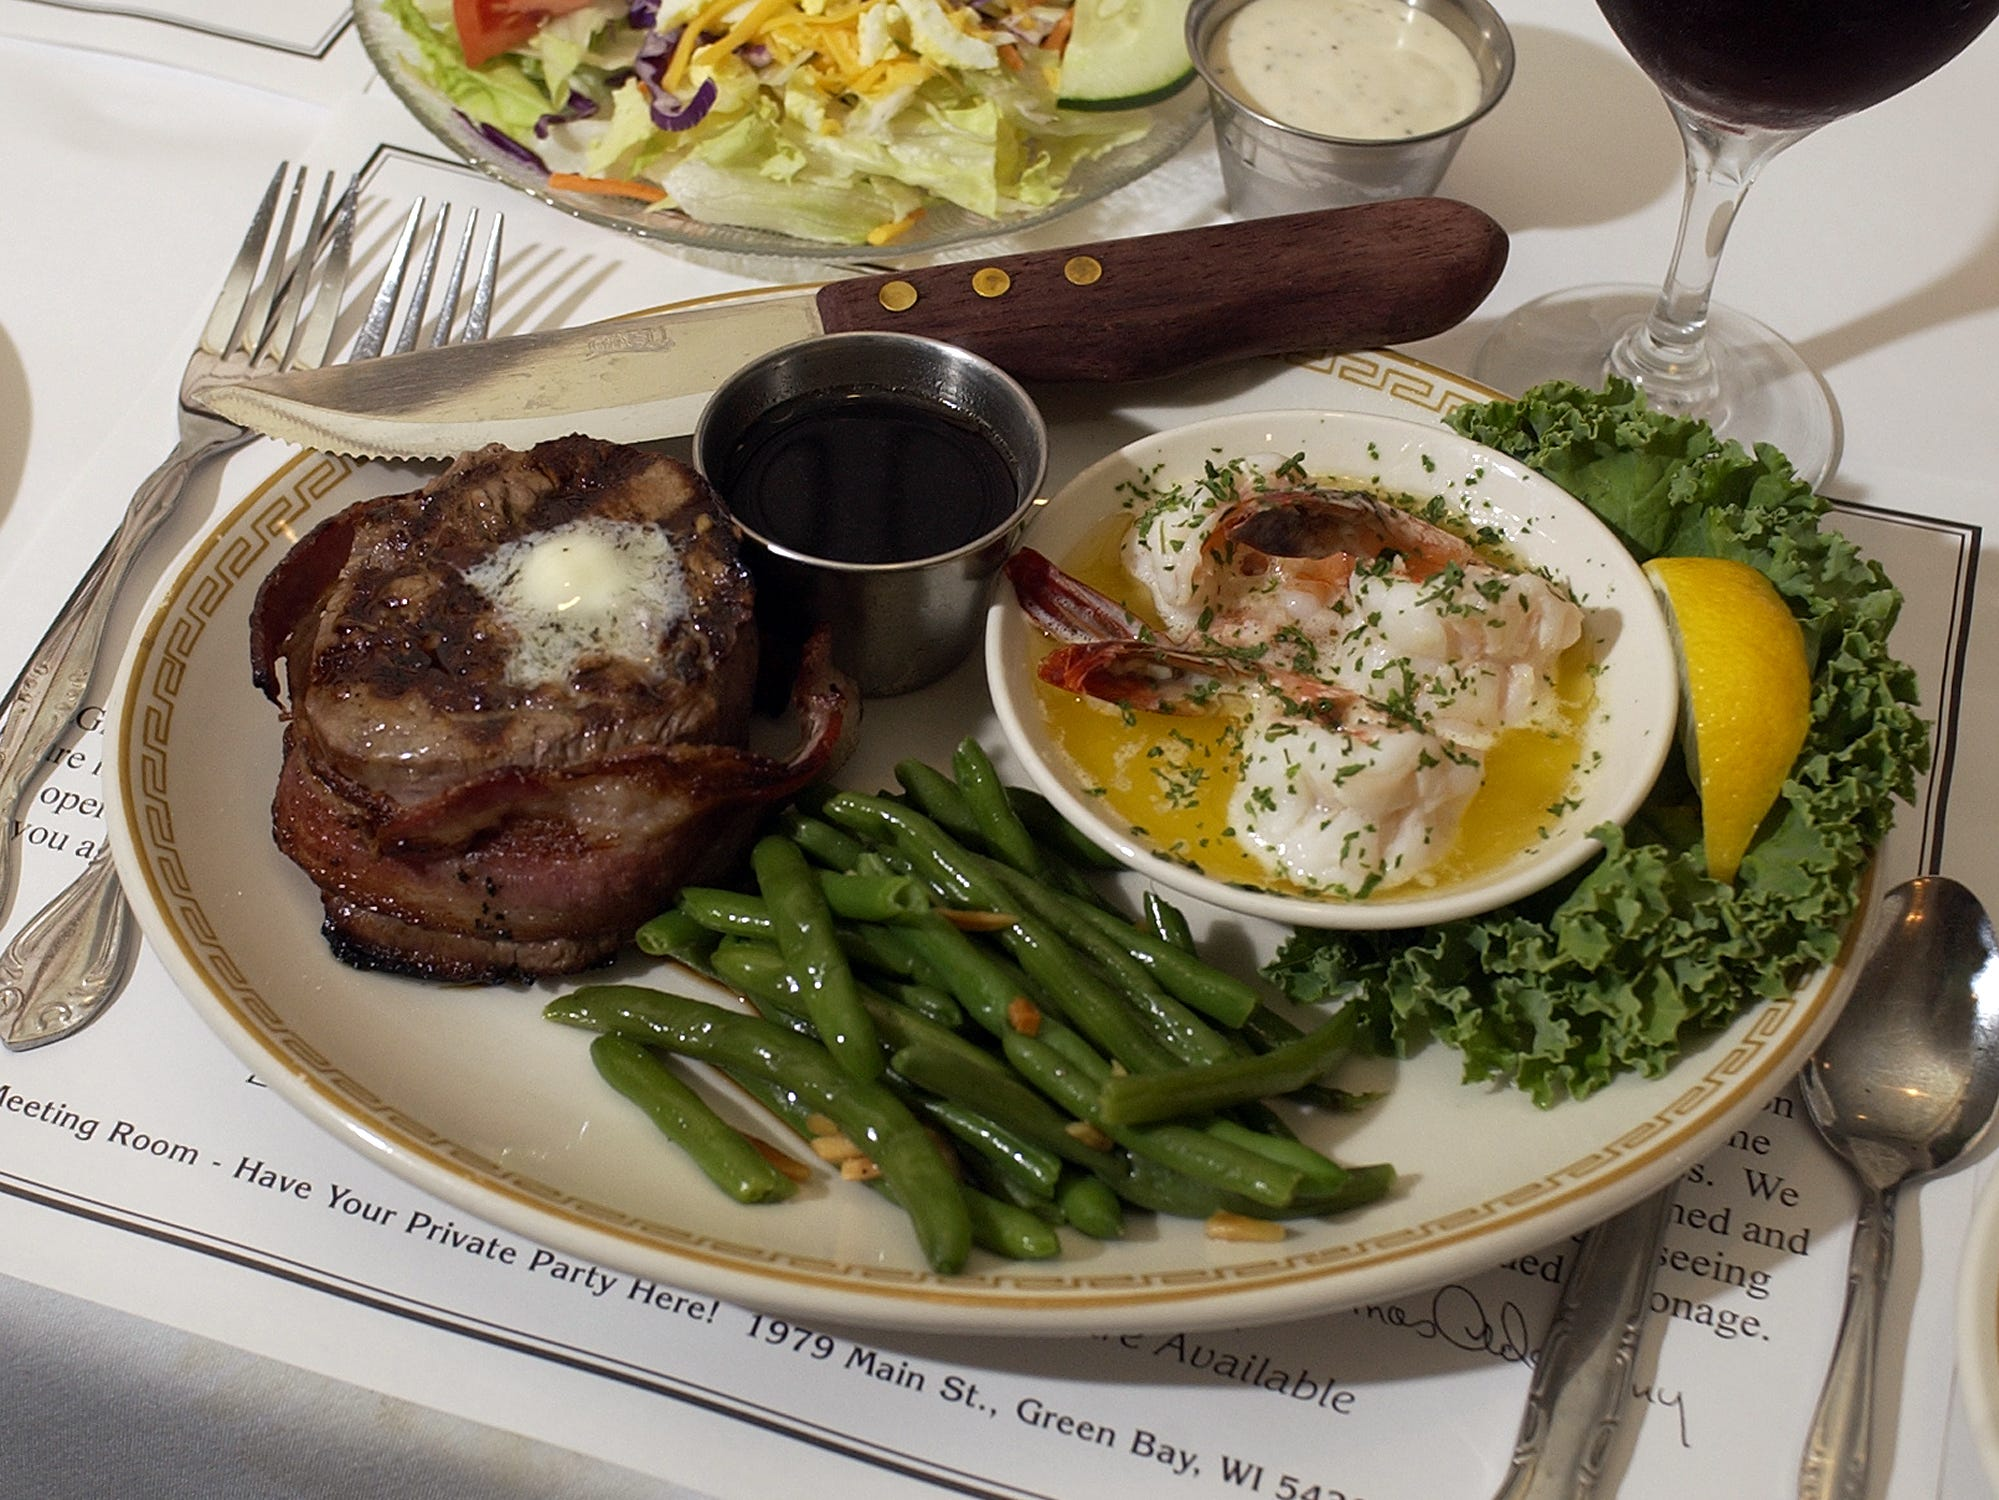 Steak and seafood are staples at Wally's Spot Supper Club.